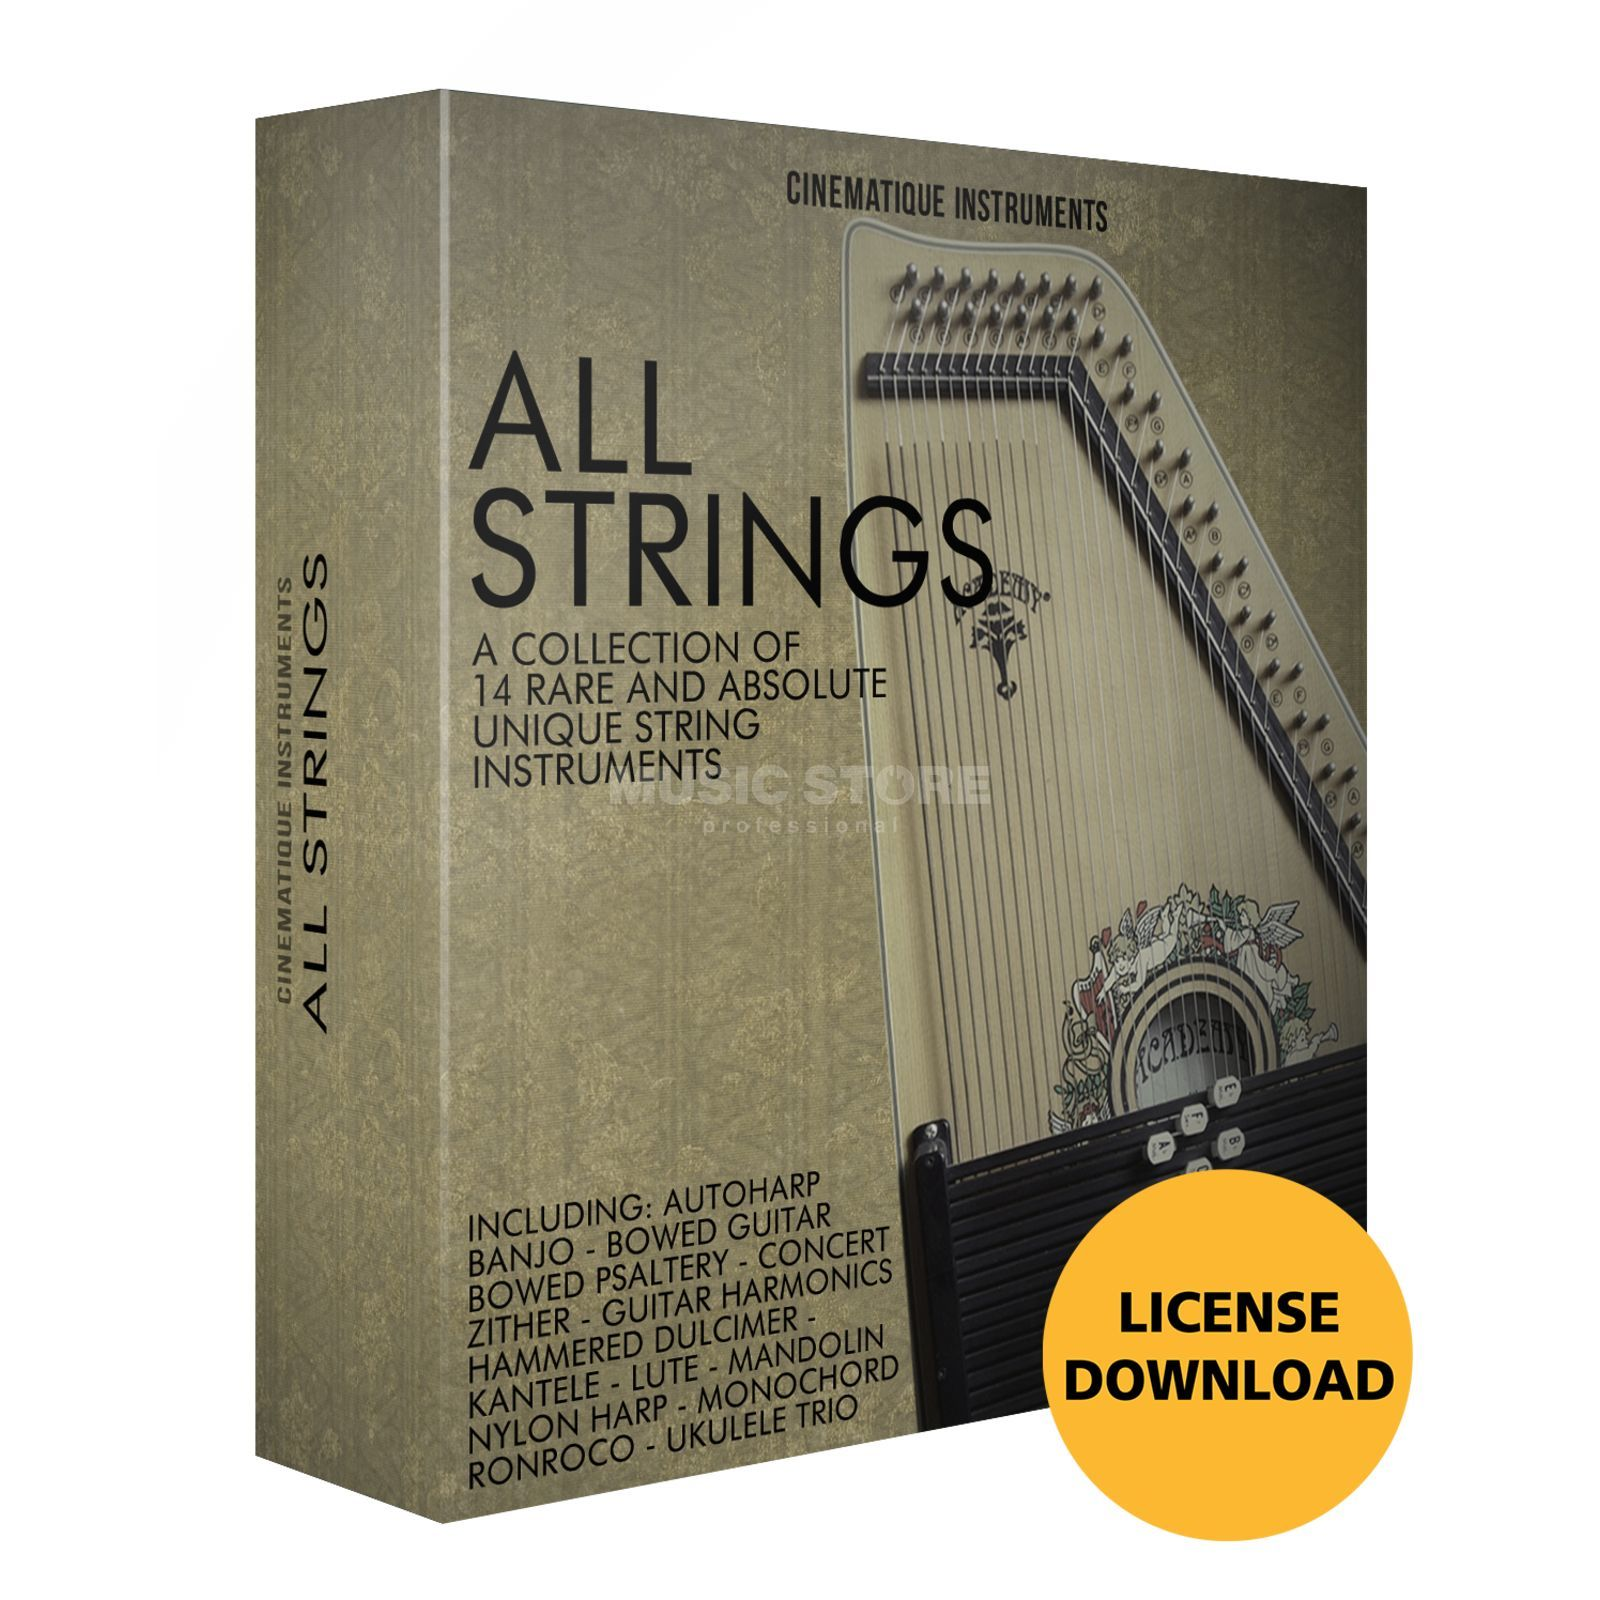 Cinematique Instruments All Strings Bundle License Code Produktbillede